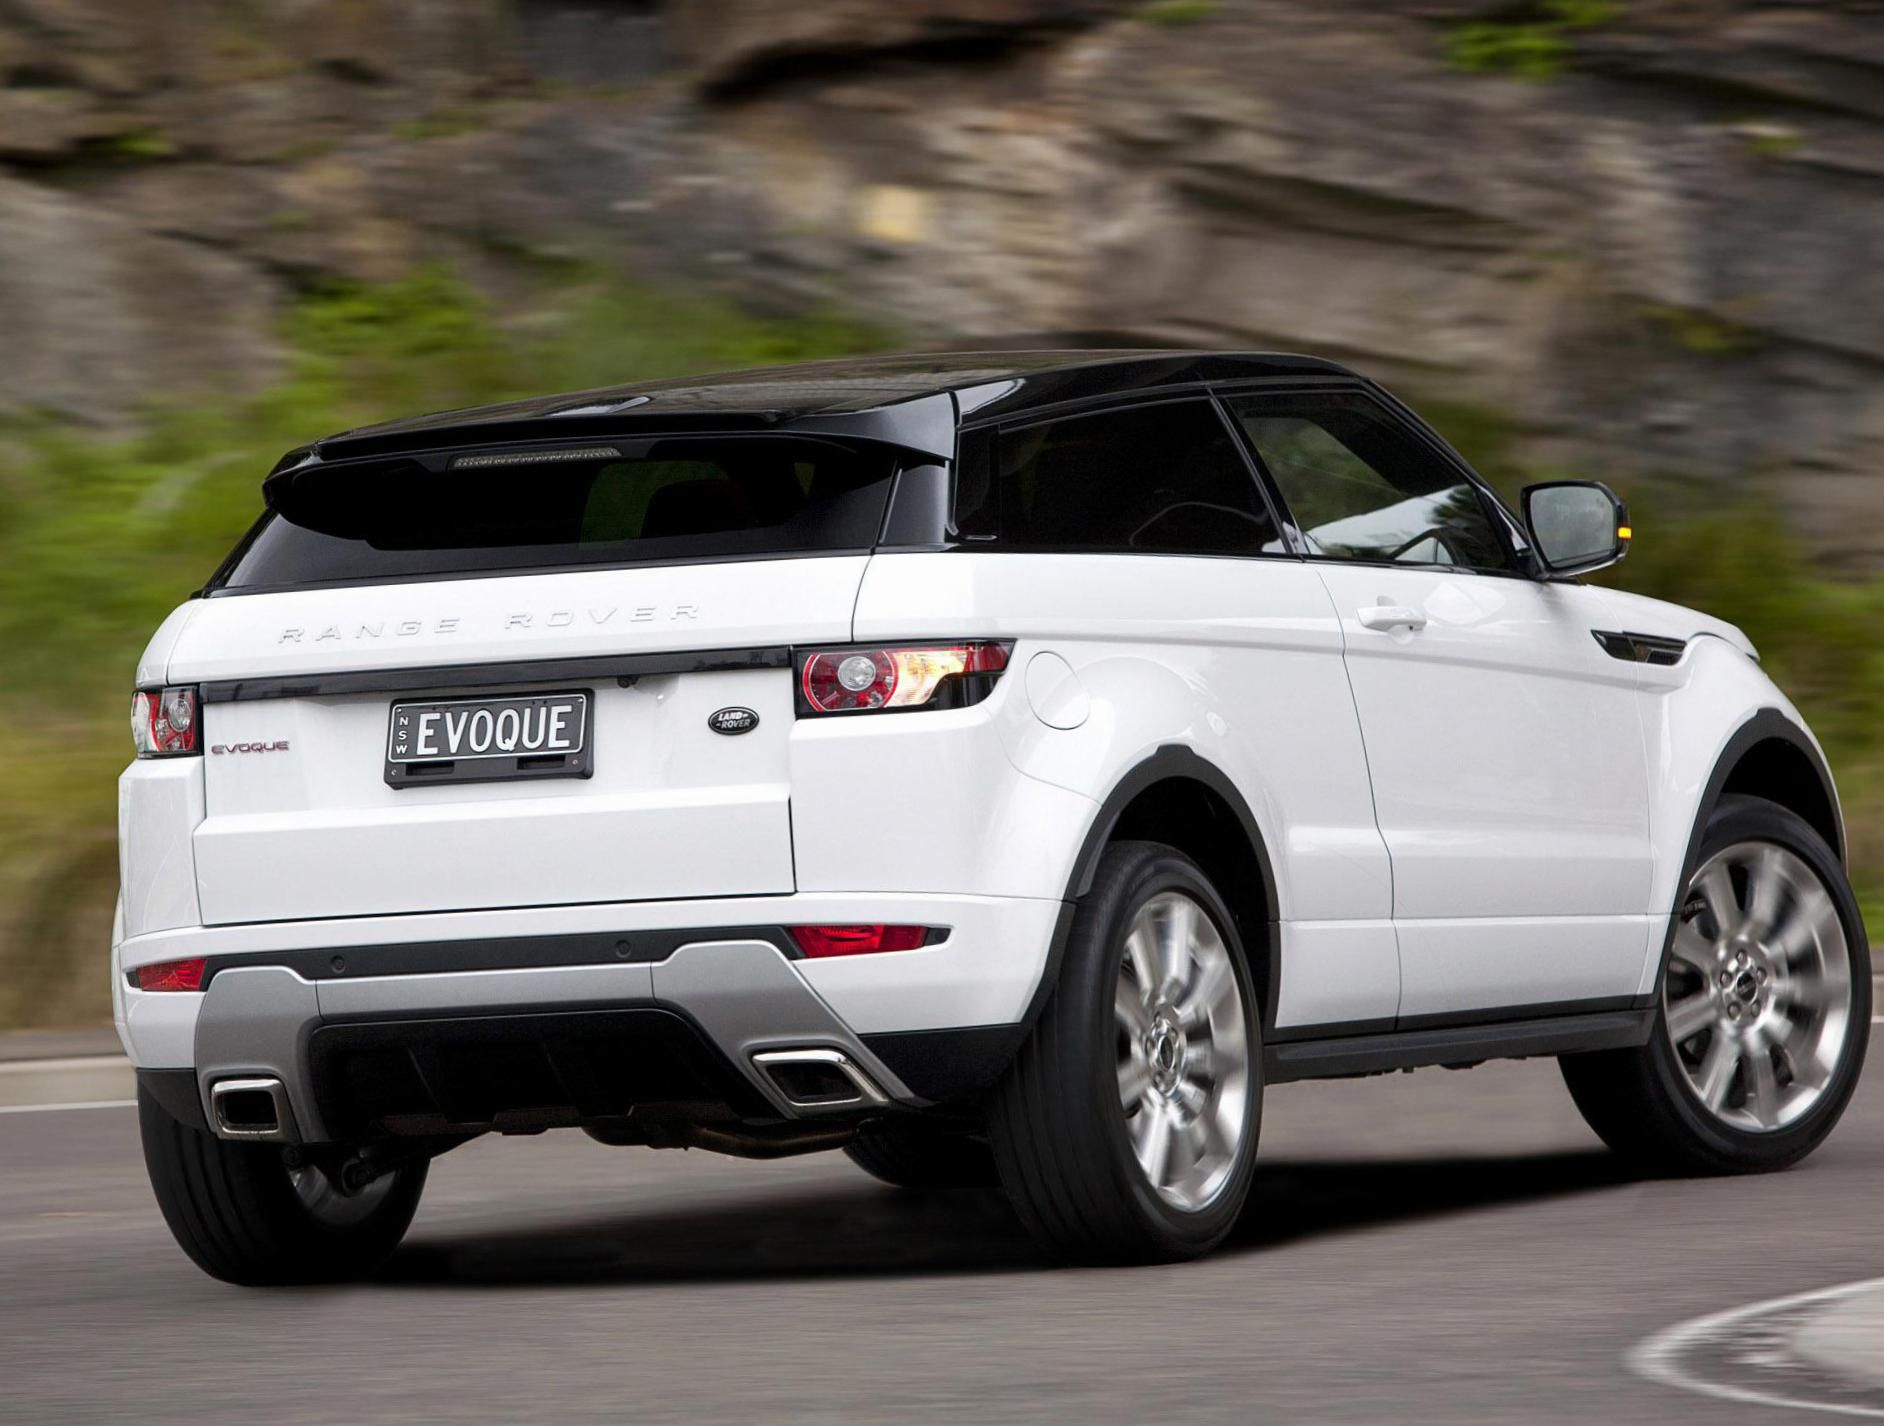 Best 25 Range rover evoque coupe ideas on Pinterest